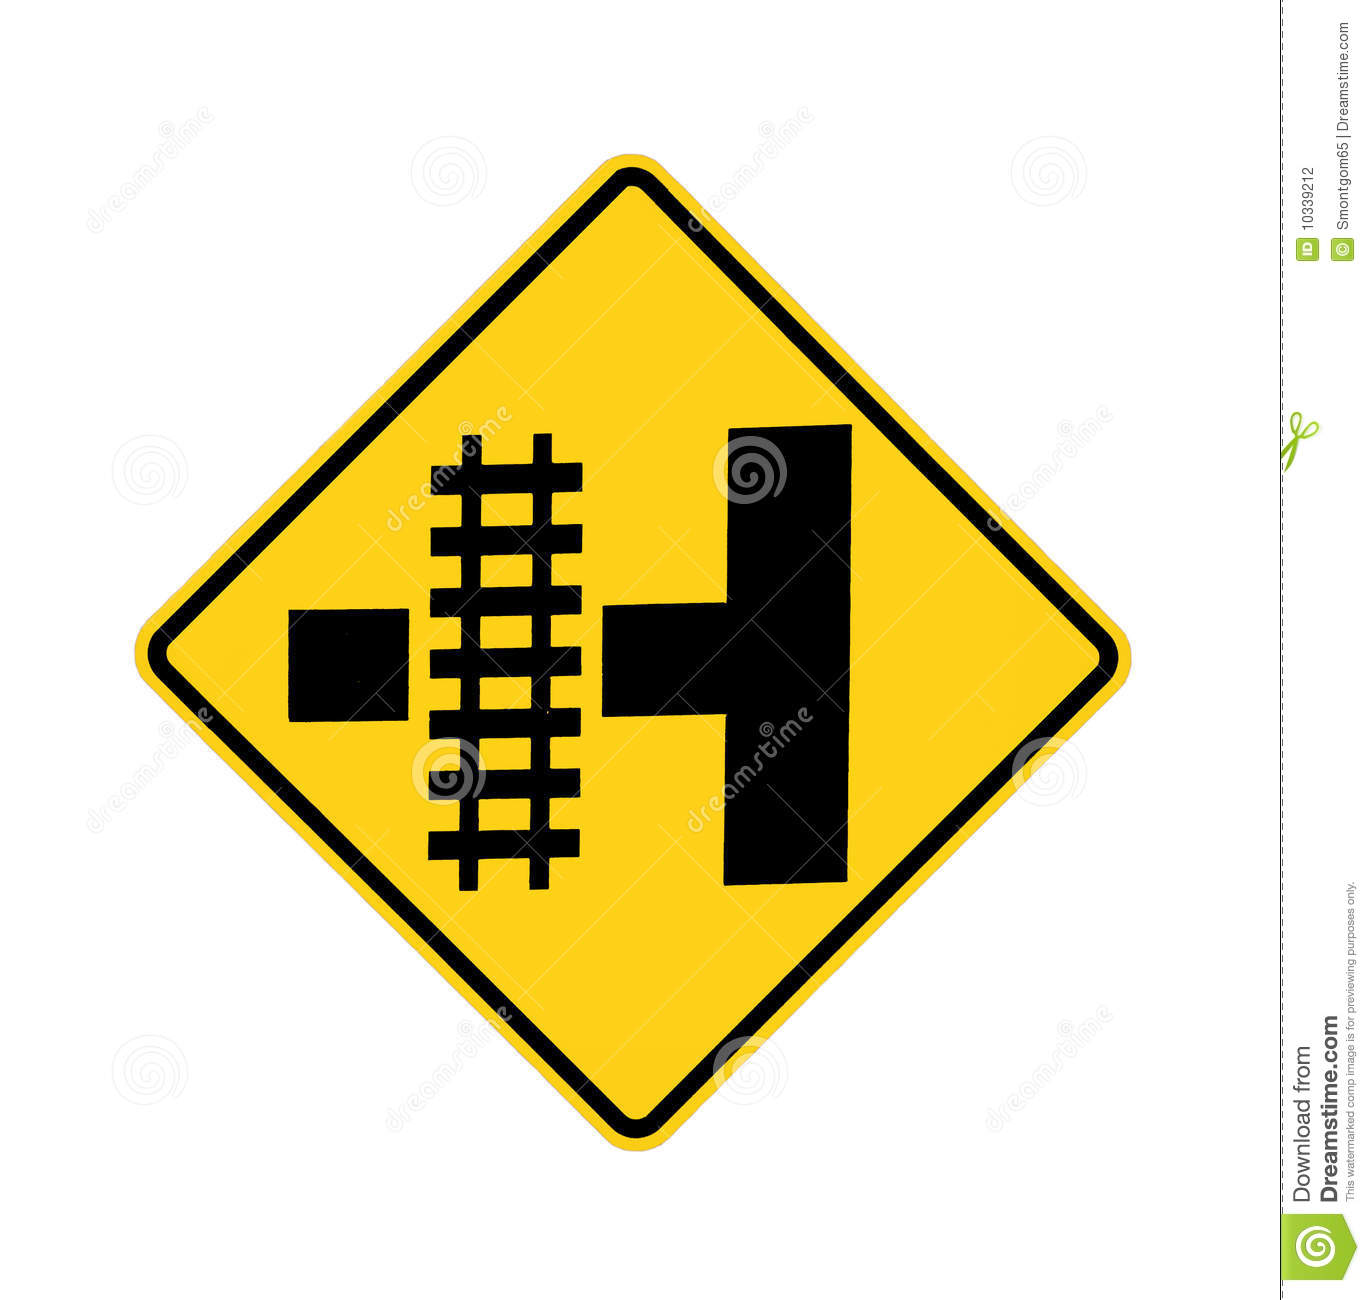 picture regarding Railroad Crossing Sign Printable identify Street Signal - Railroad Crossing Inventory Picture - Graphic of hazard